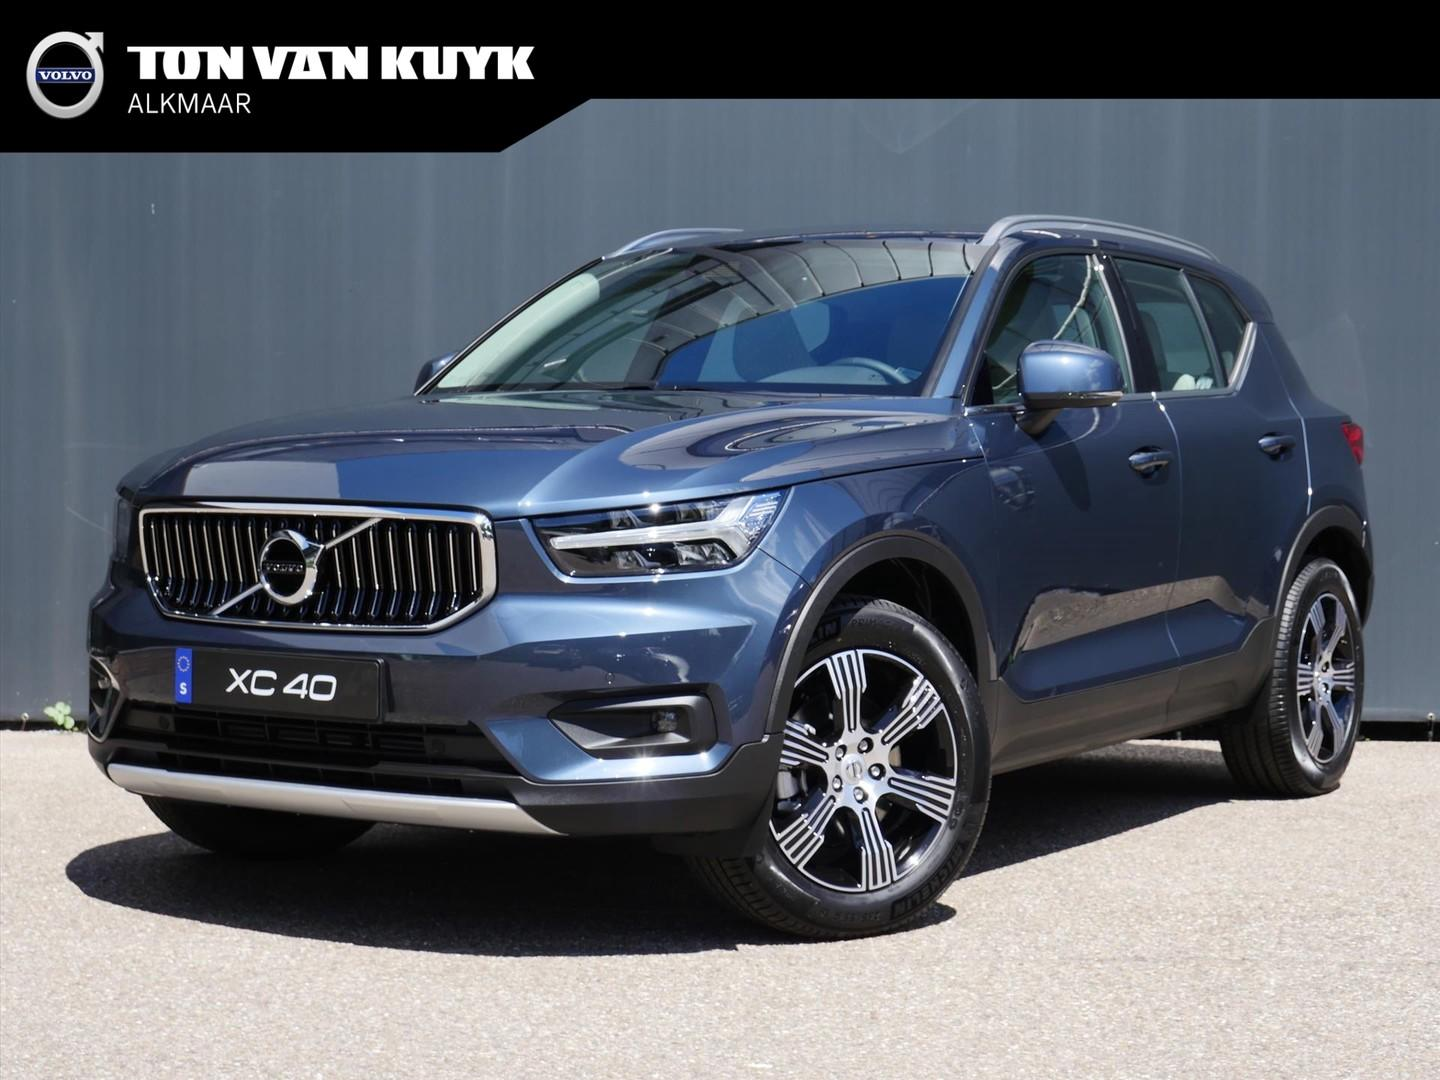 Volvo Xc40 T4 aut inscription / intellisafe / dab+ / 19""